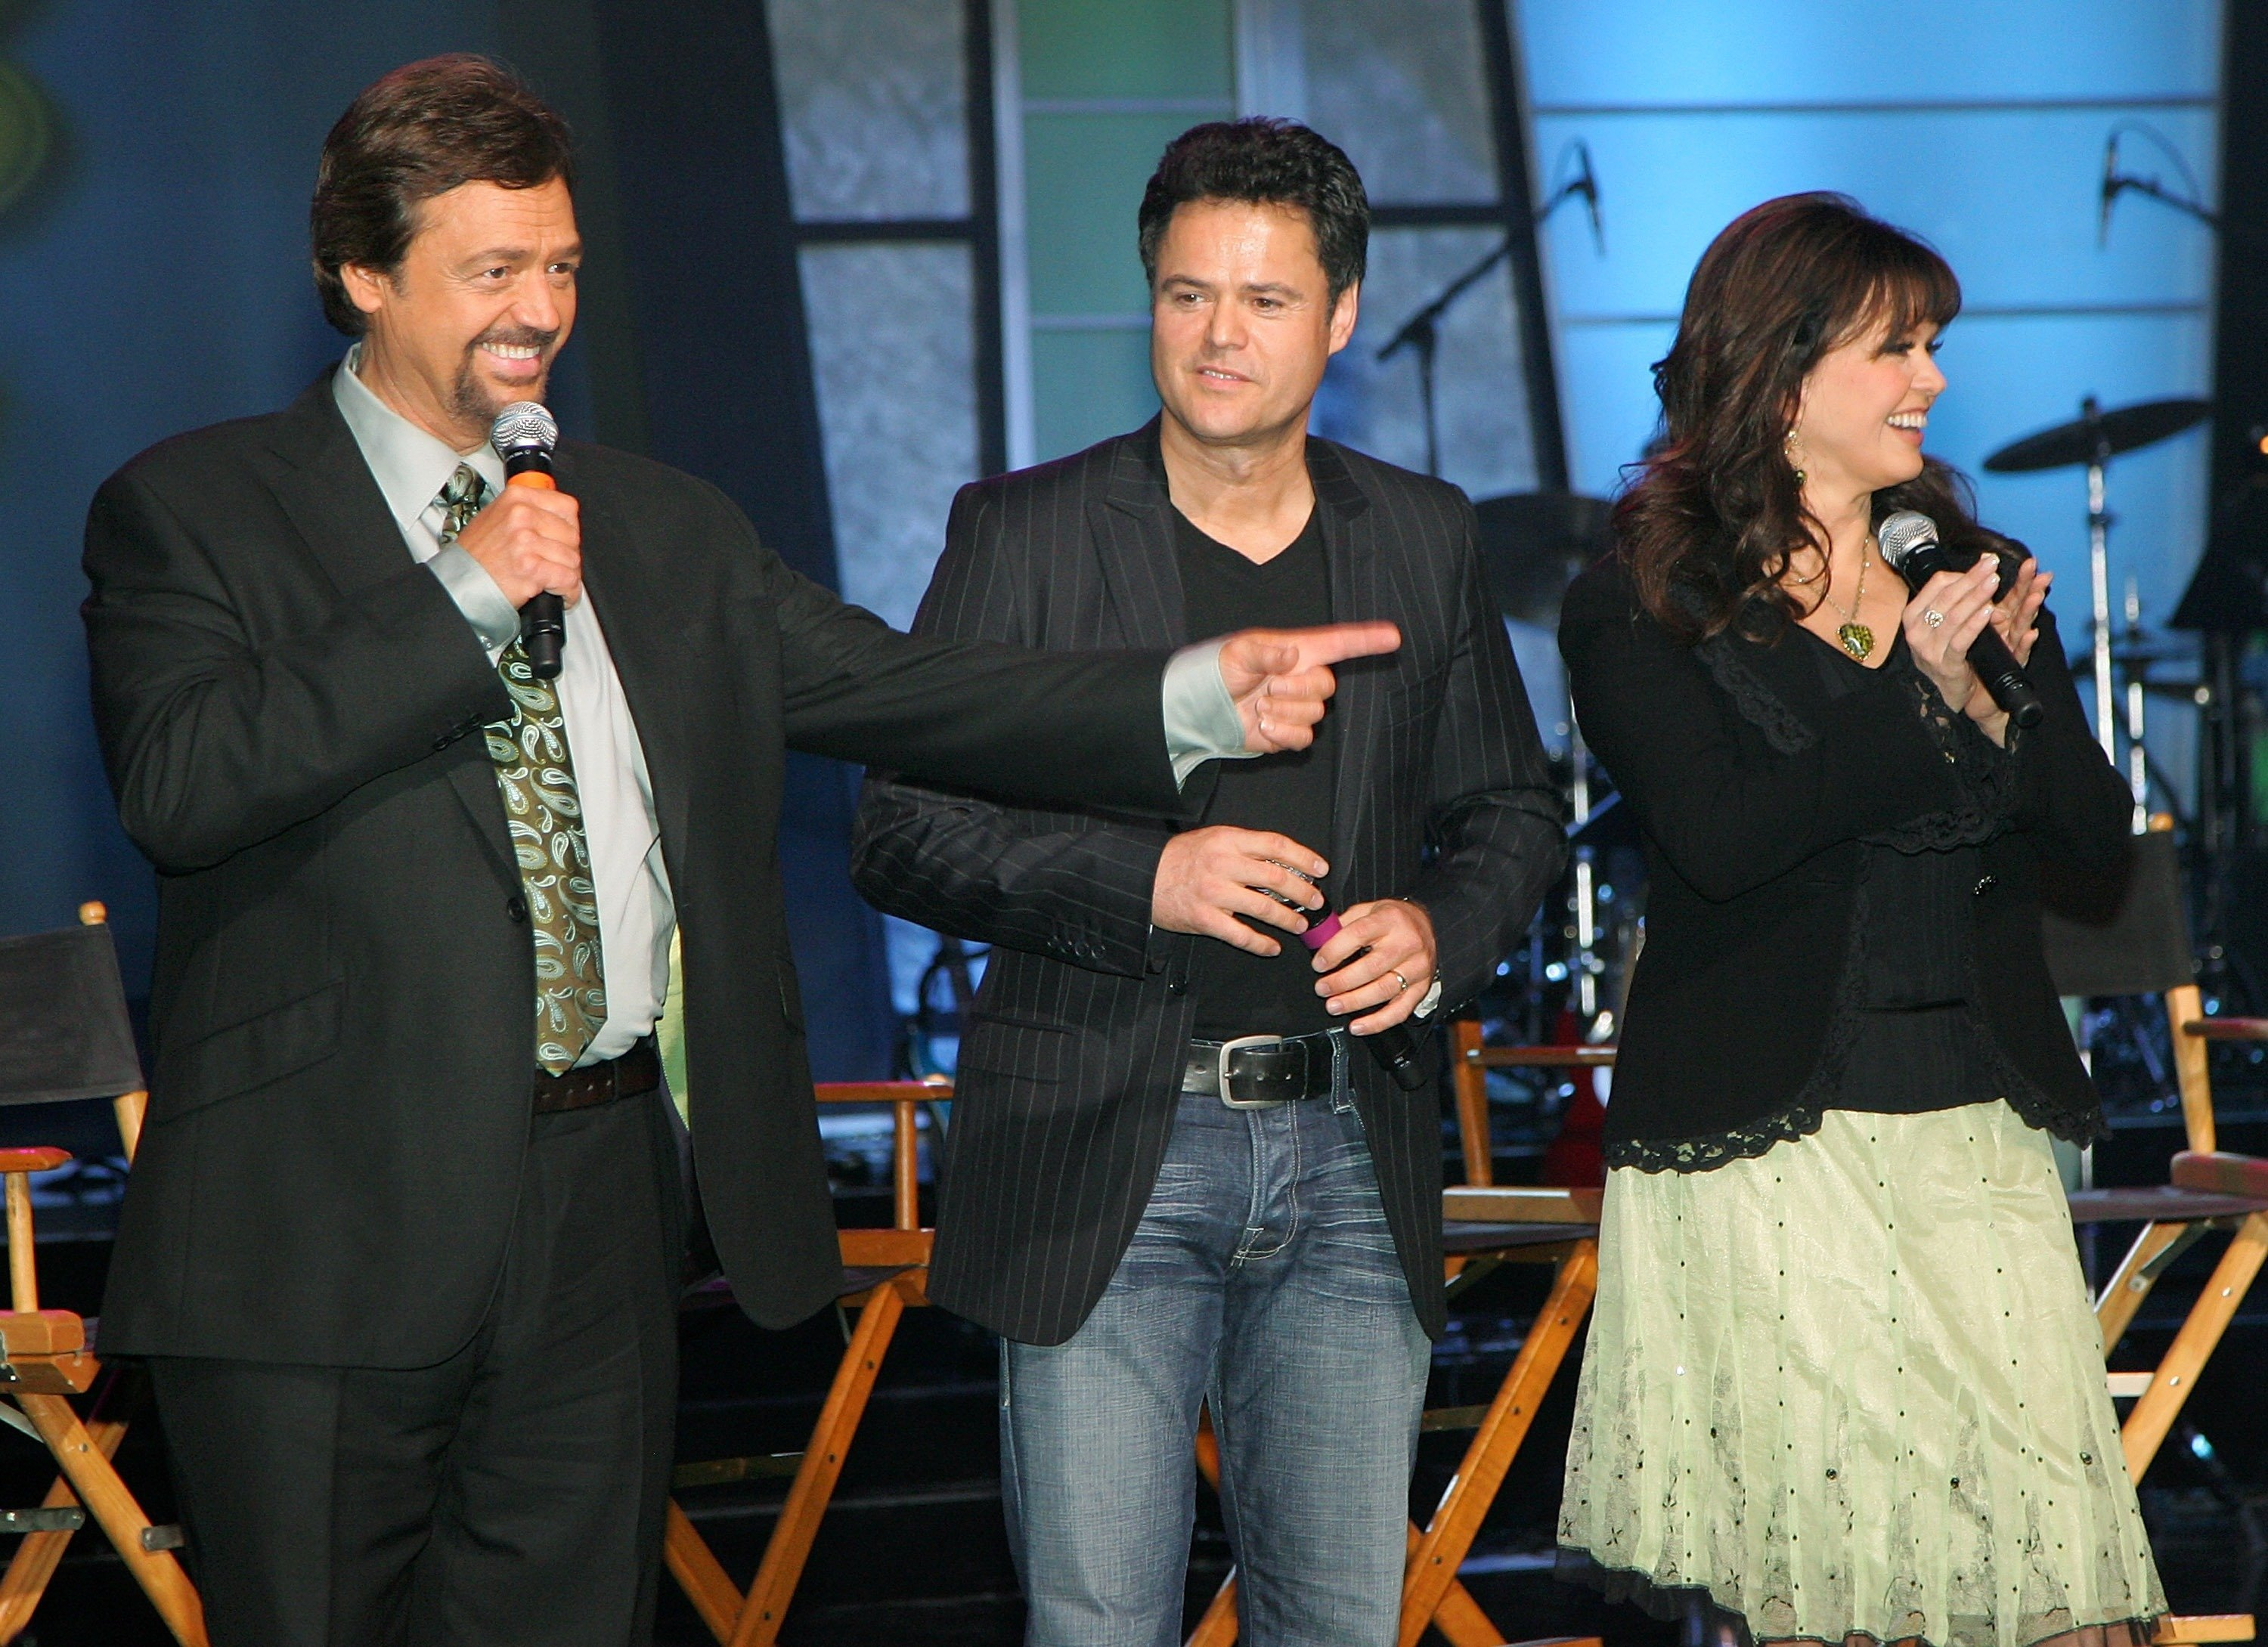 Jay Osmond, Donny Osmond and Marie Osmond speak during a meet and greet with fans at the Orleans Hotel & Casino August 13, 2007, in Las Vegas, Nevada. | Source: Getty Images.